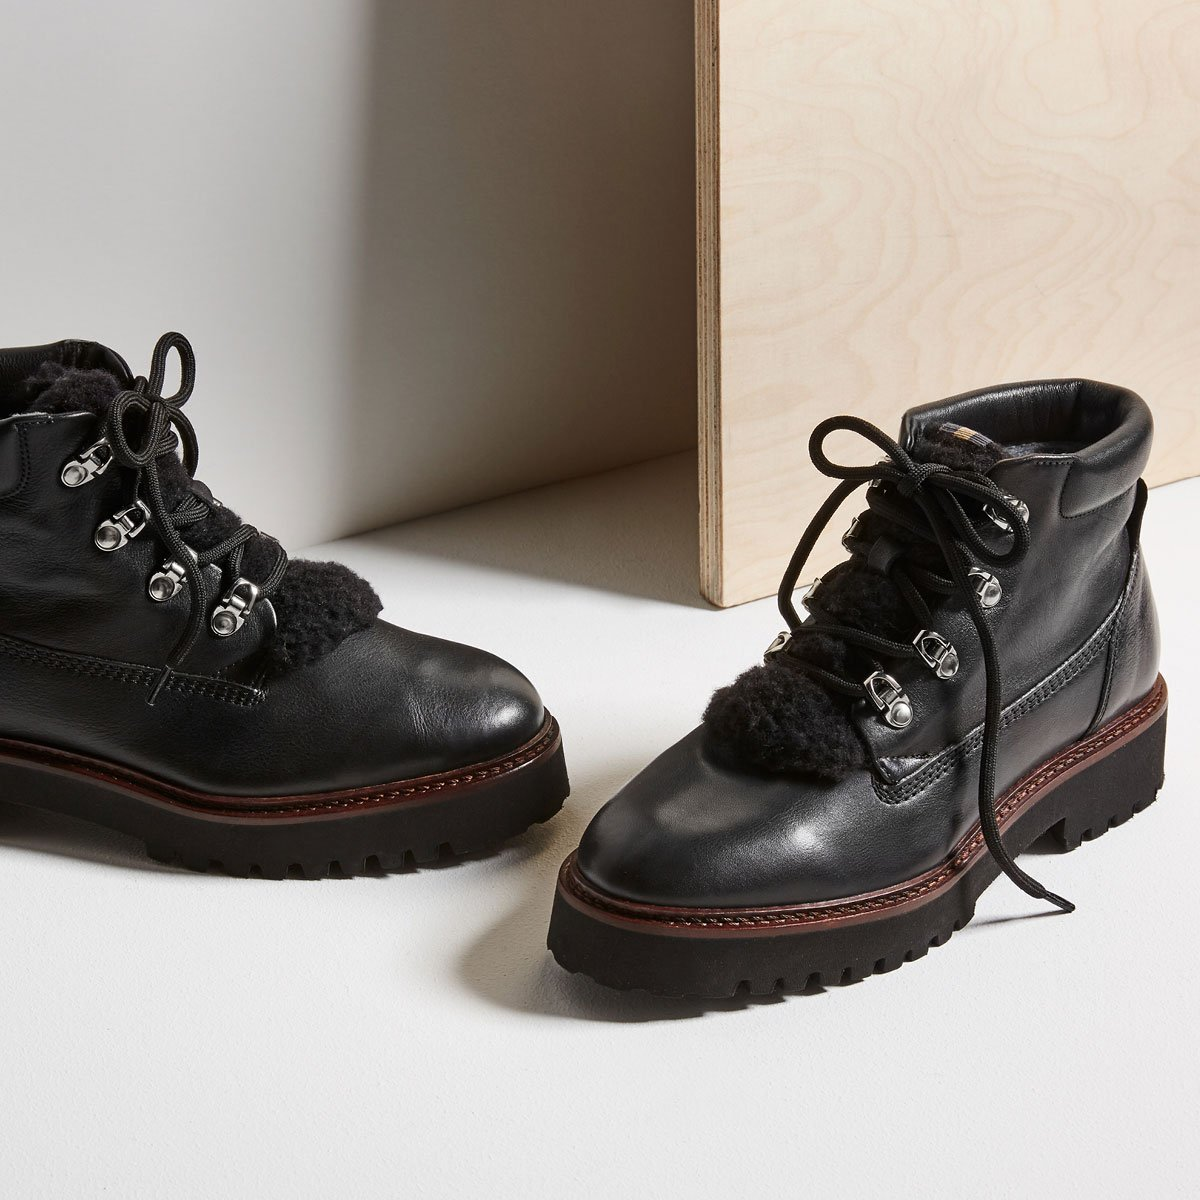 hiking boots to platform sneakers